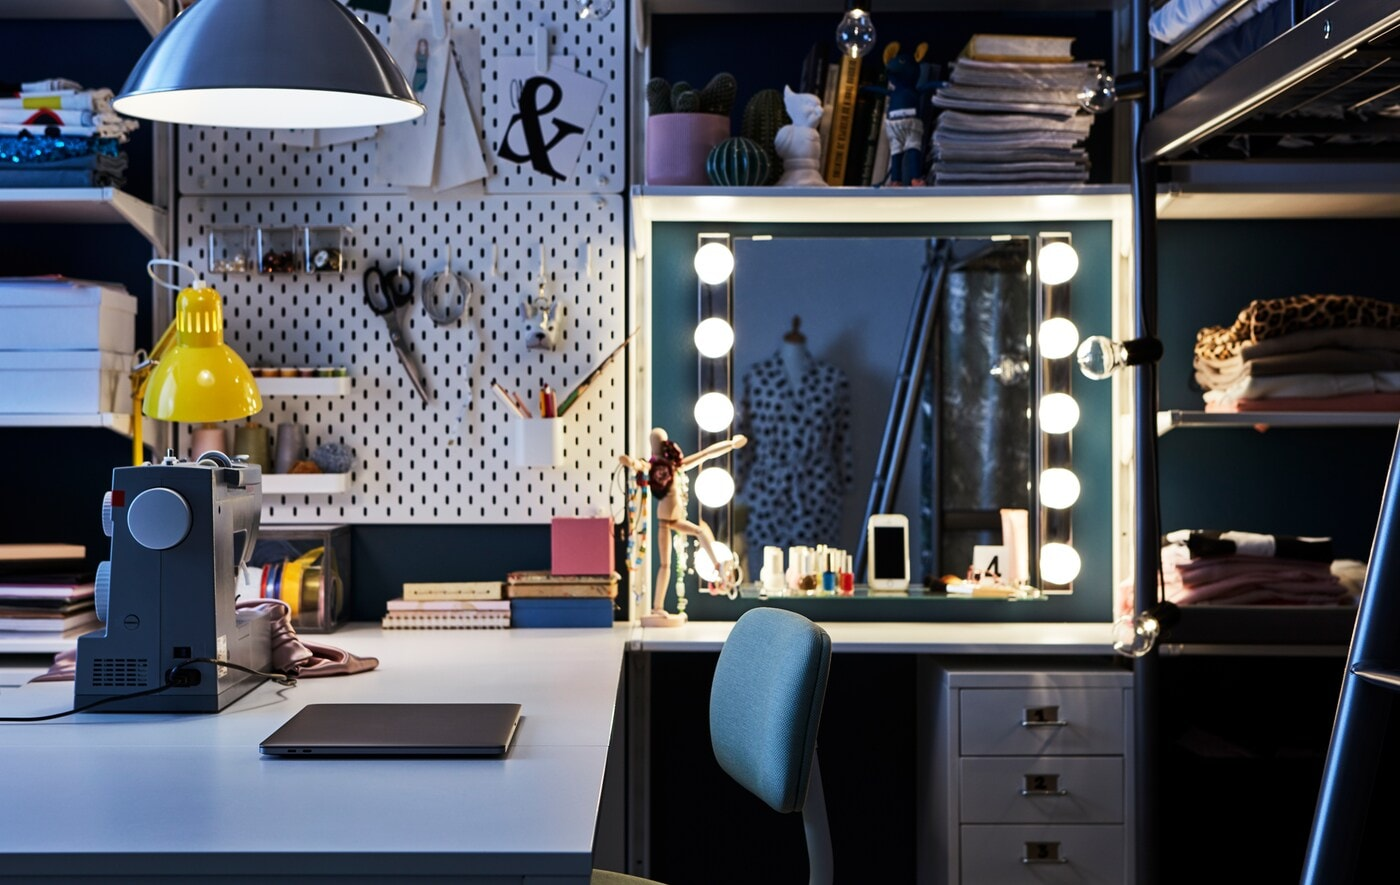 A bedroom workspace with desk, sewing machine, makeup area and IKEA SKÅDIS pegboard.